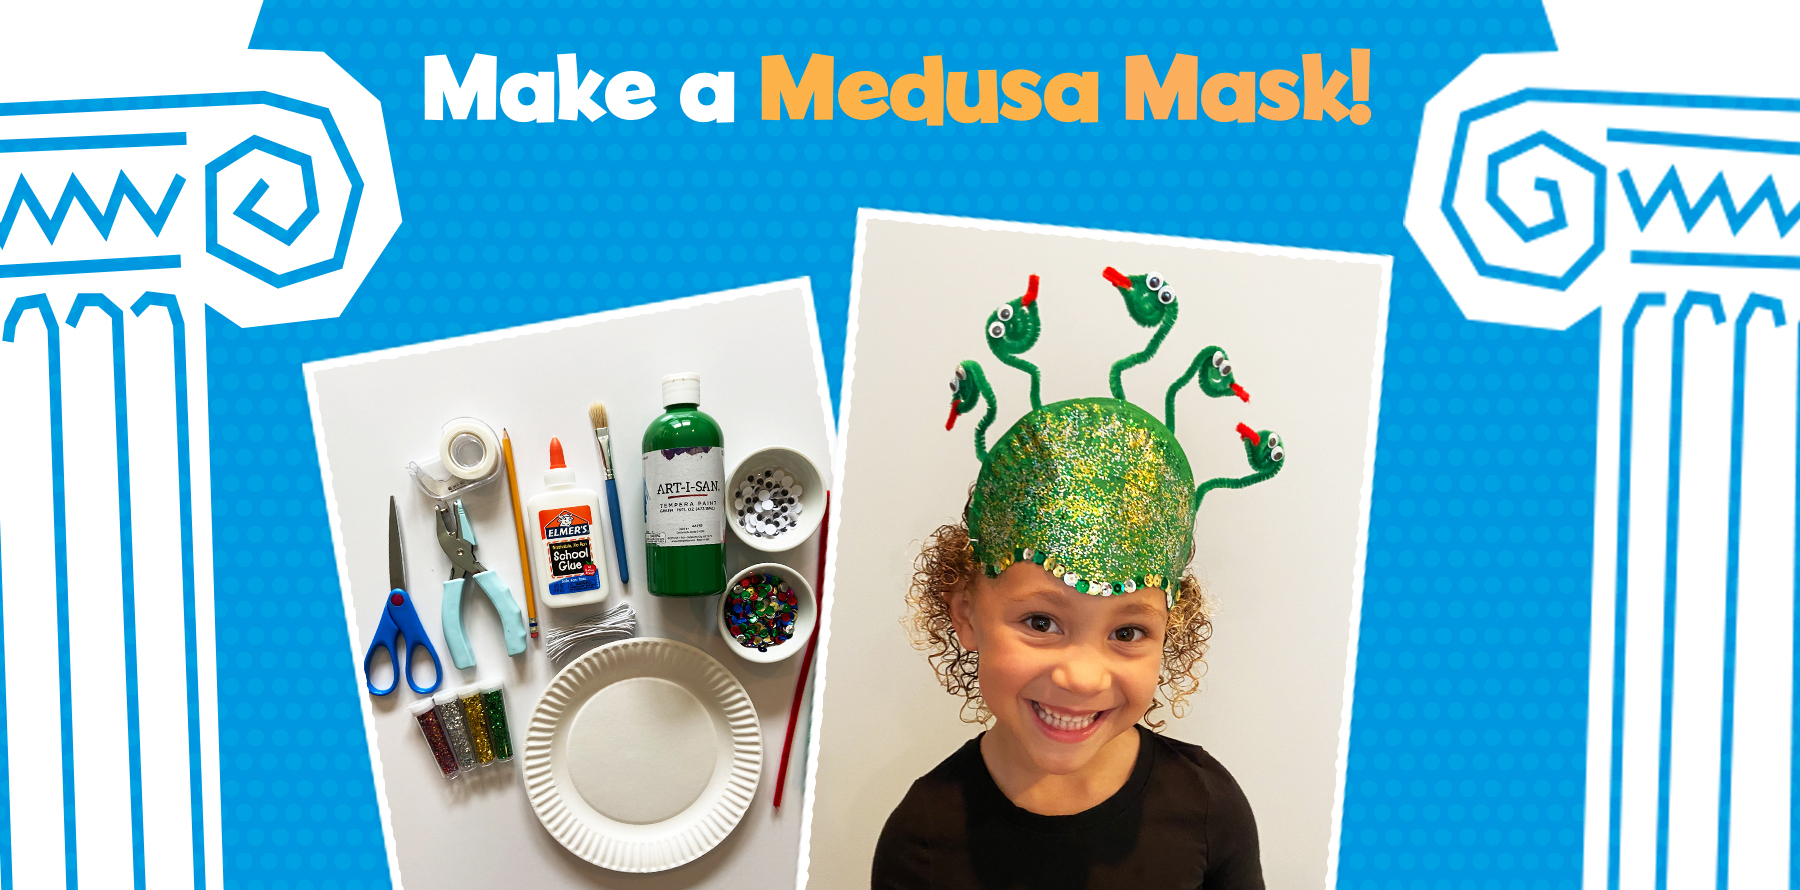 Make a Medusa mask with Little Passports